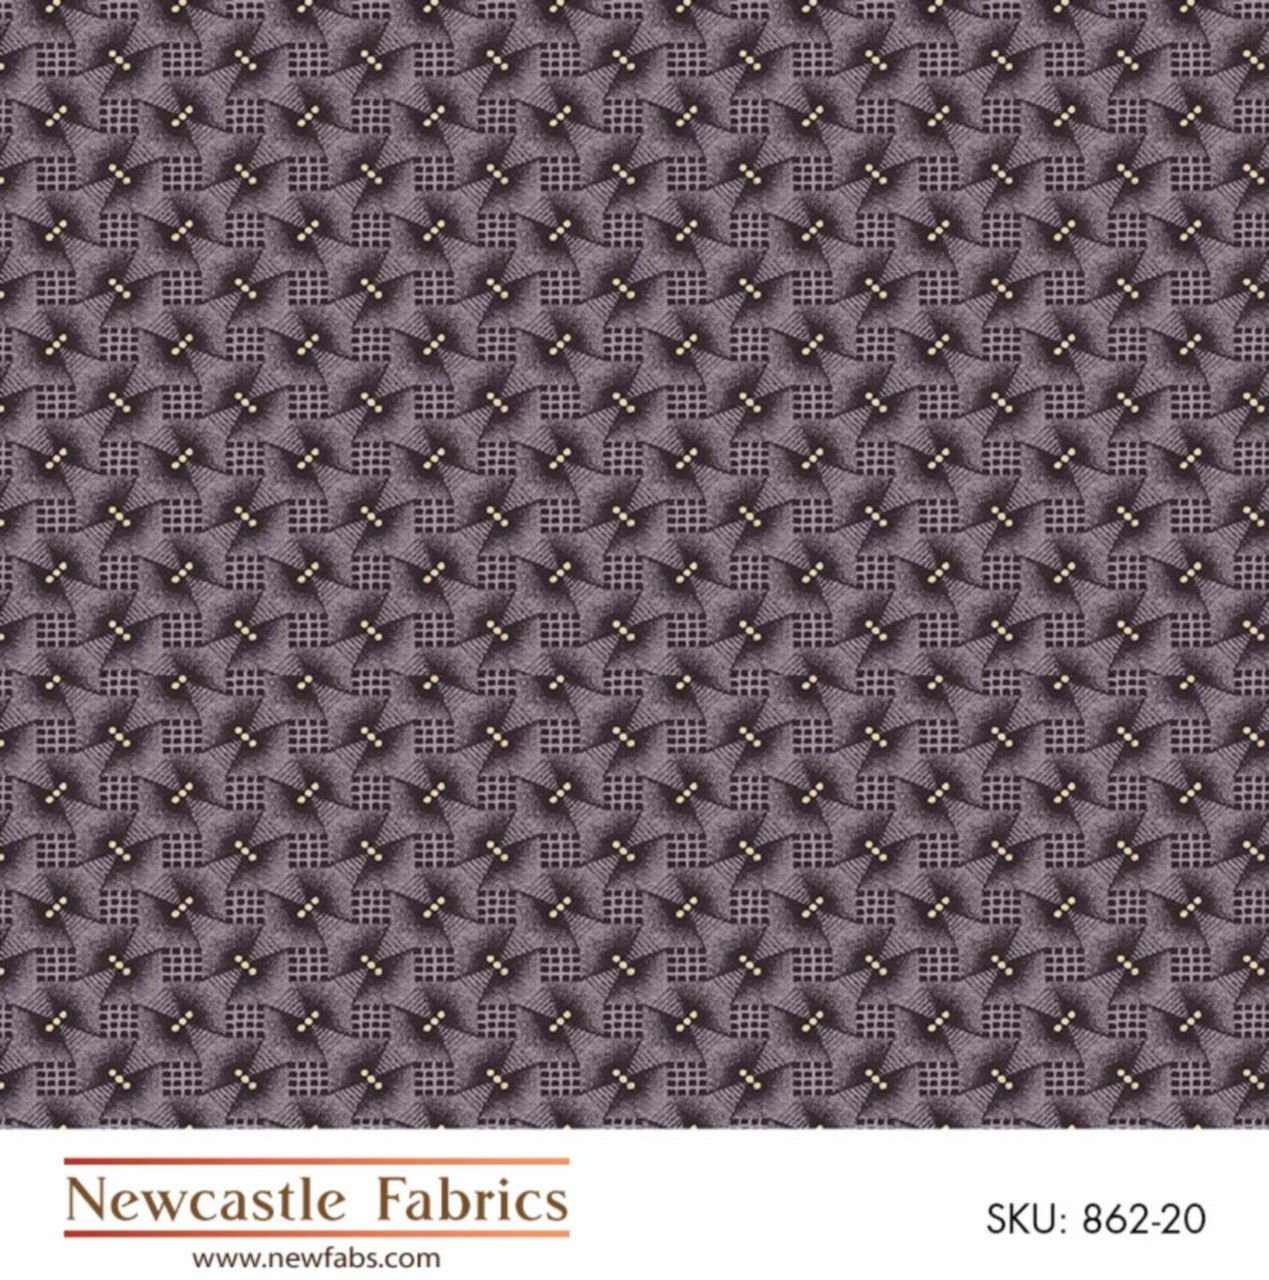 MOURNING GRAYS FUGITIVE GEOMETRIC WOVEN SQUARES by NEWCASTLE